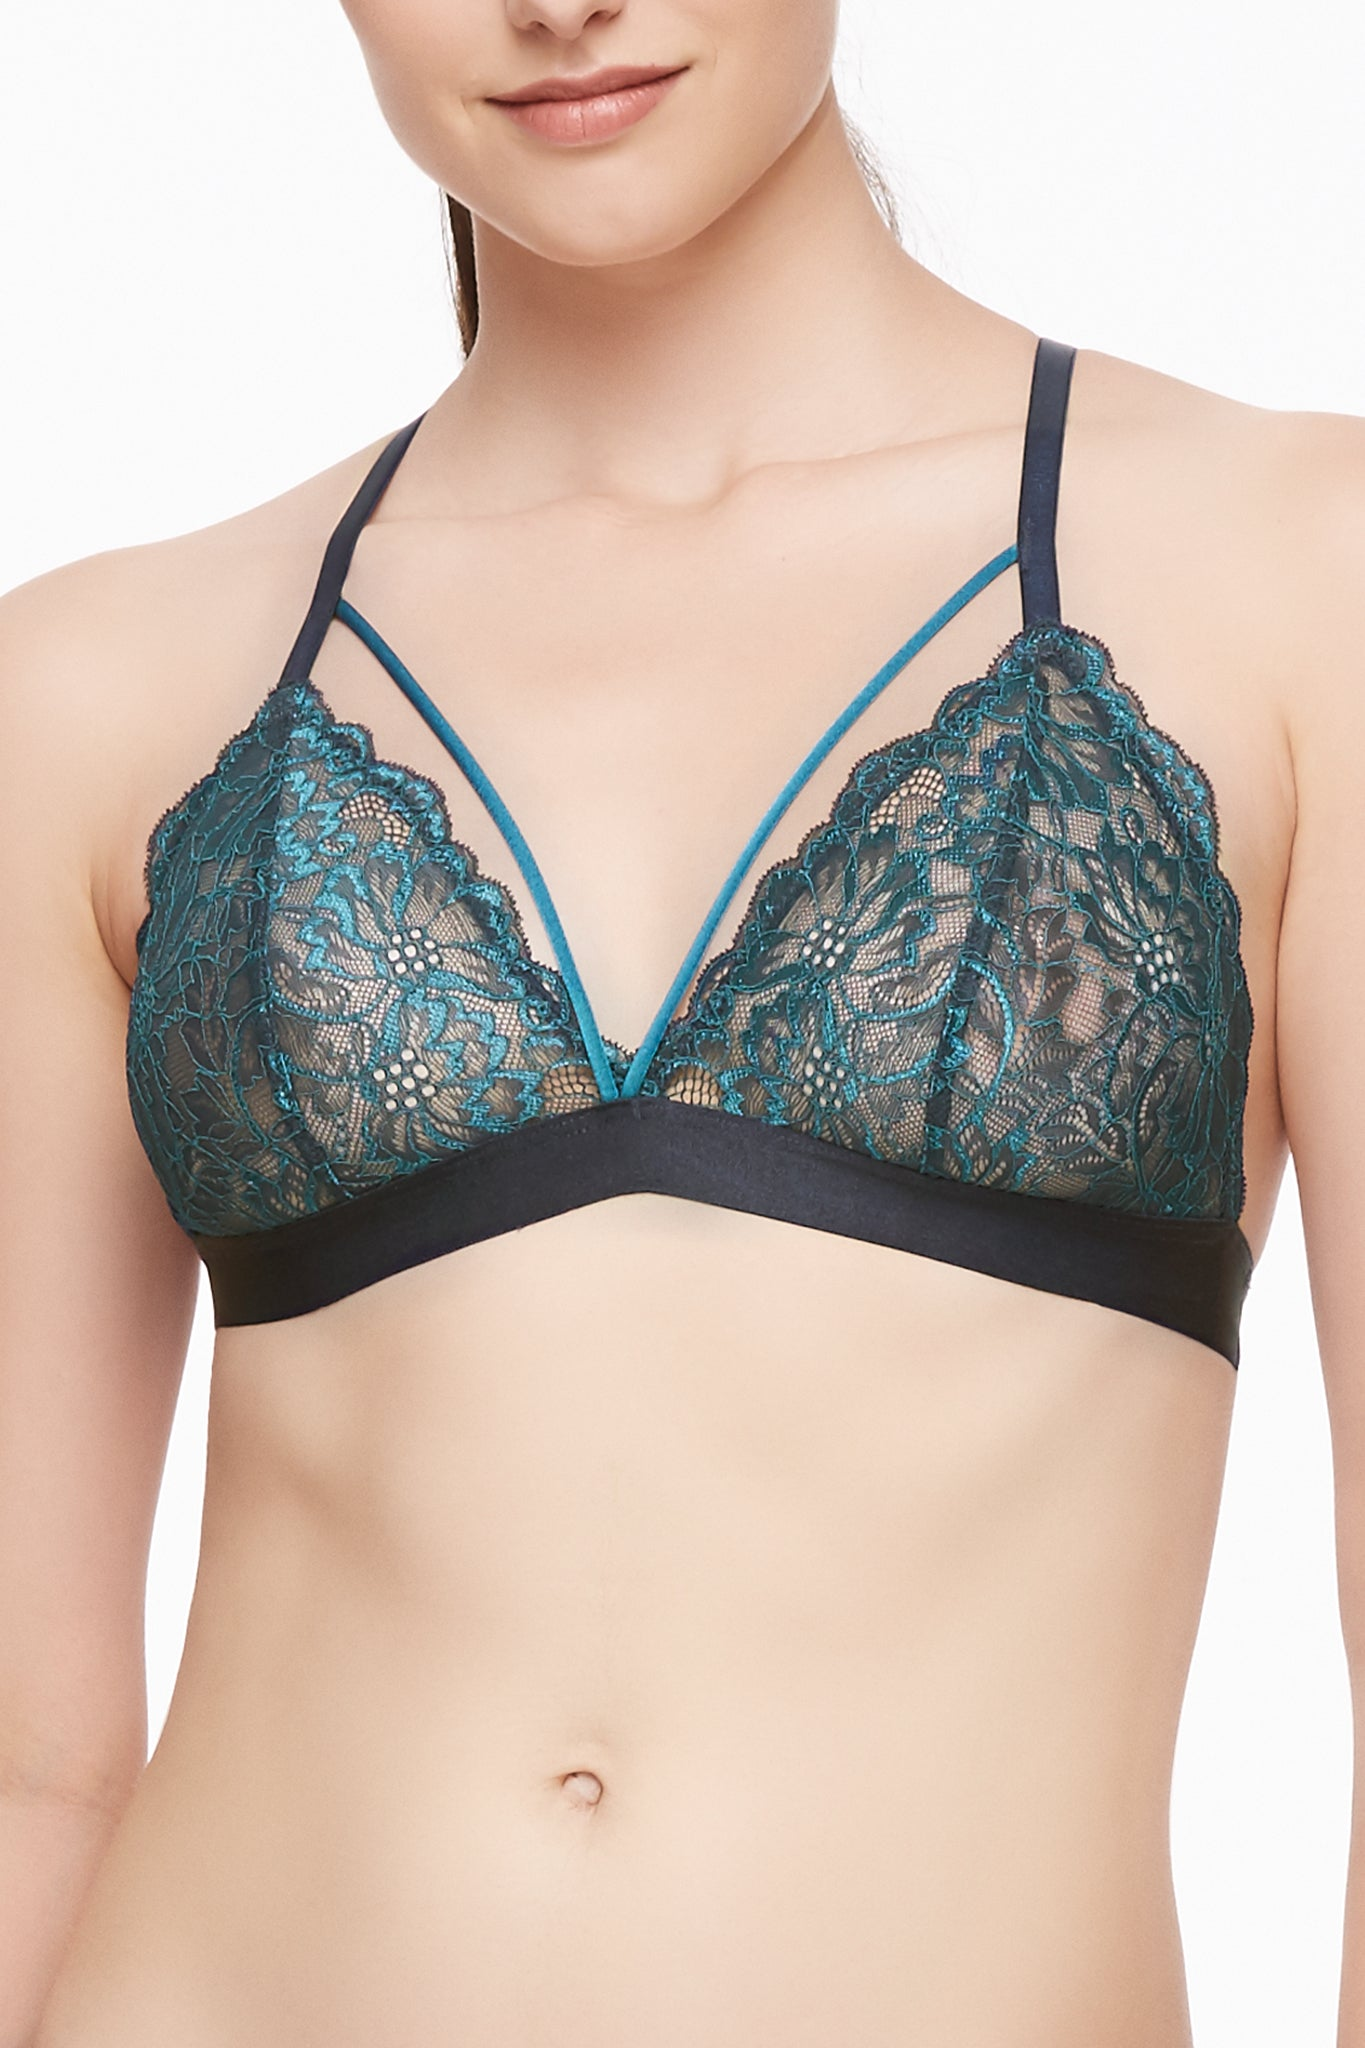 Stone/ Oceanview Cross Dye Strappy Bralette